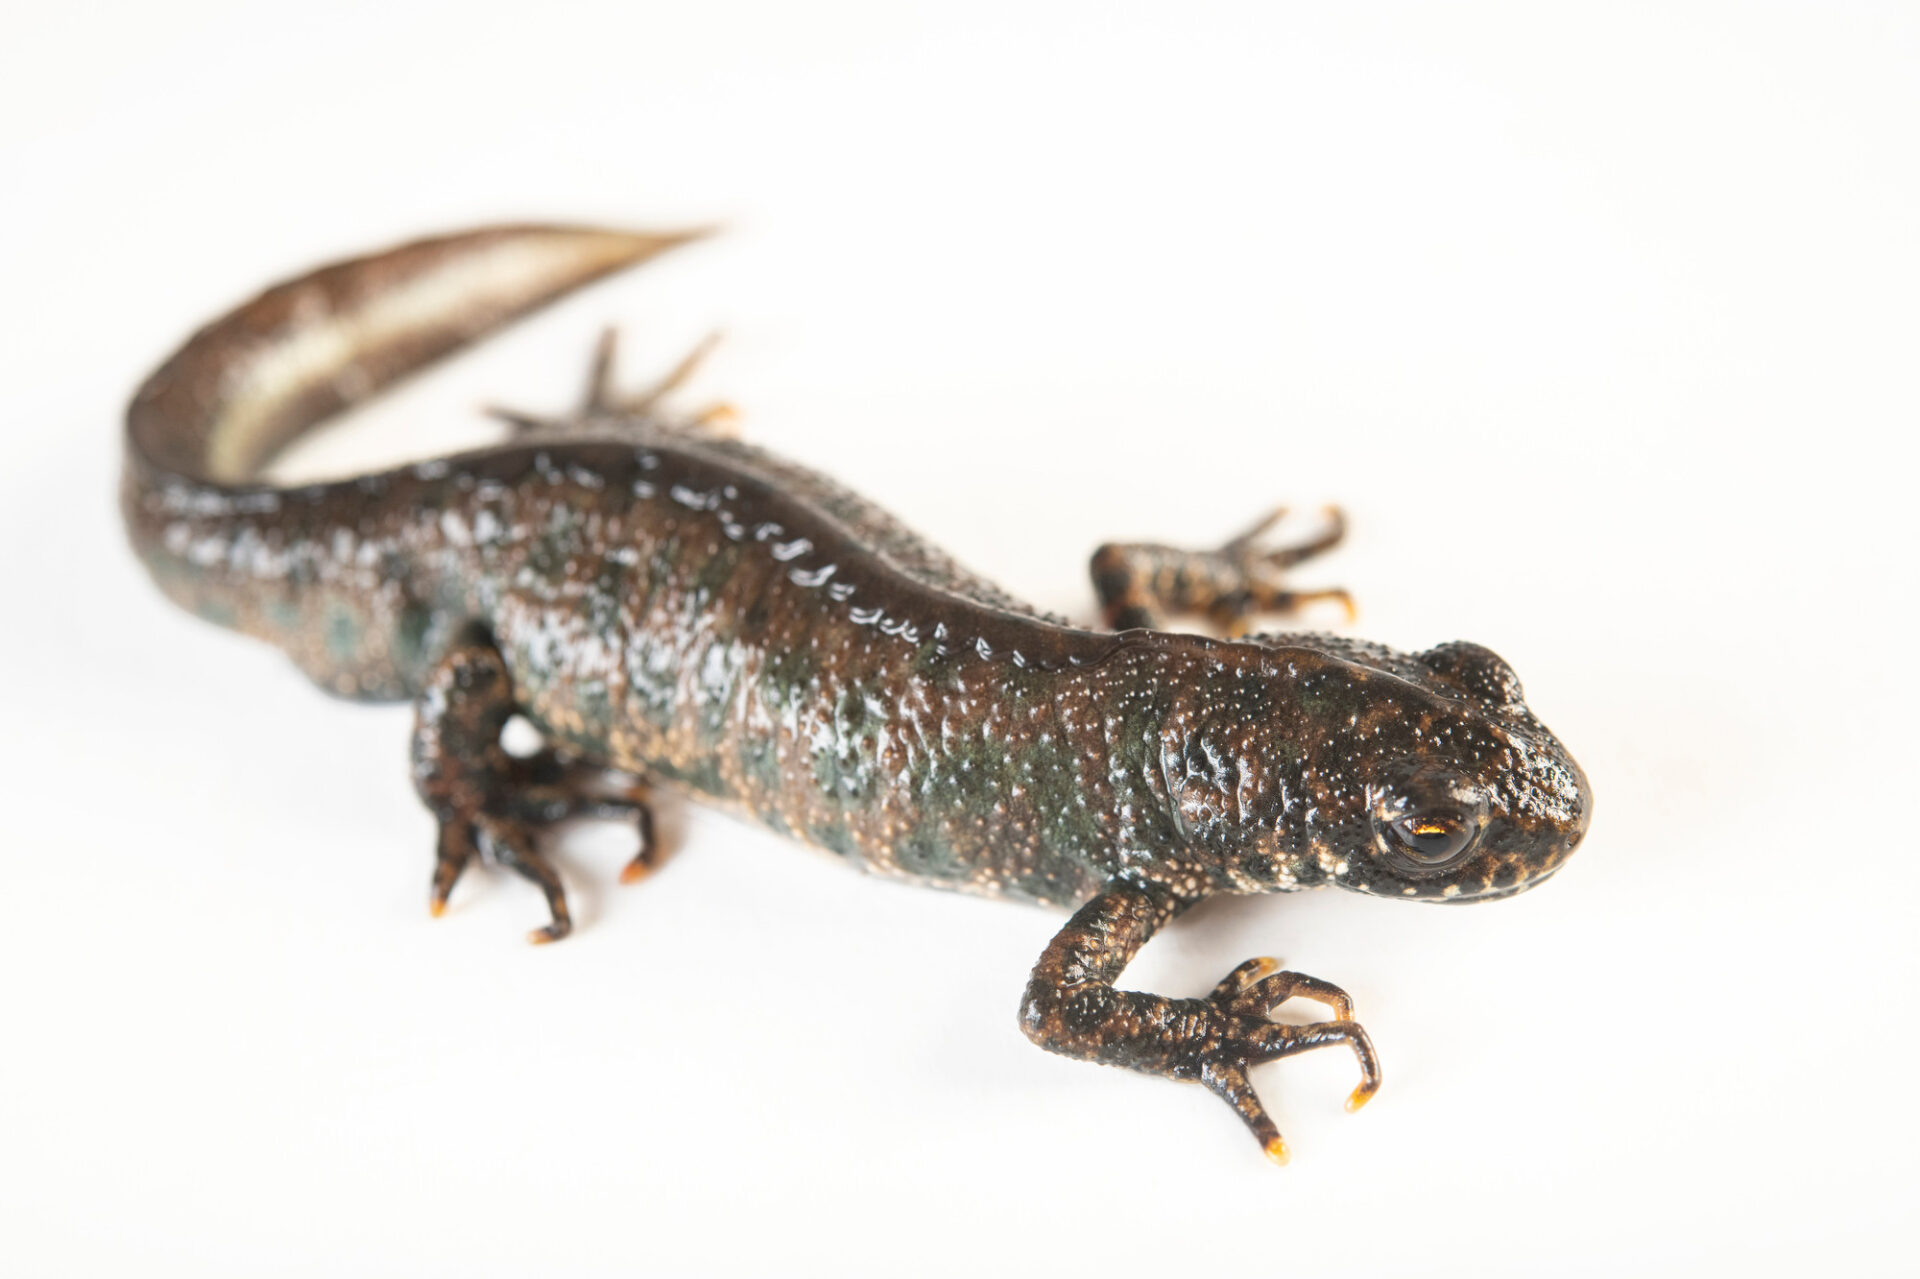 Photo: A Balkan crested newt (Triturus ivanbureschi) from a private collection.